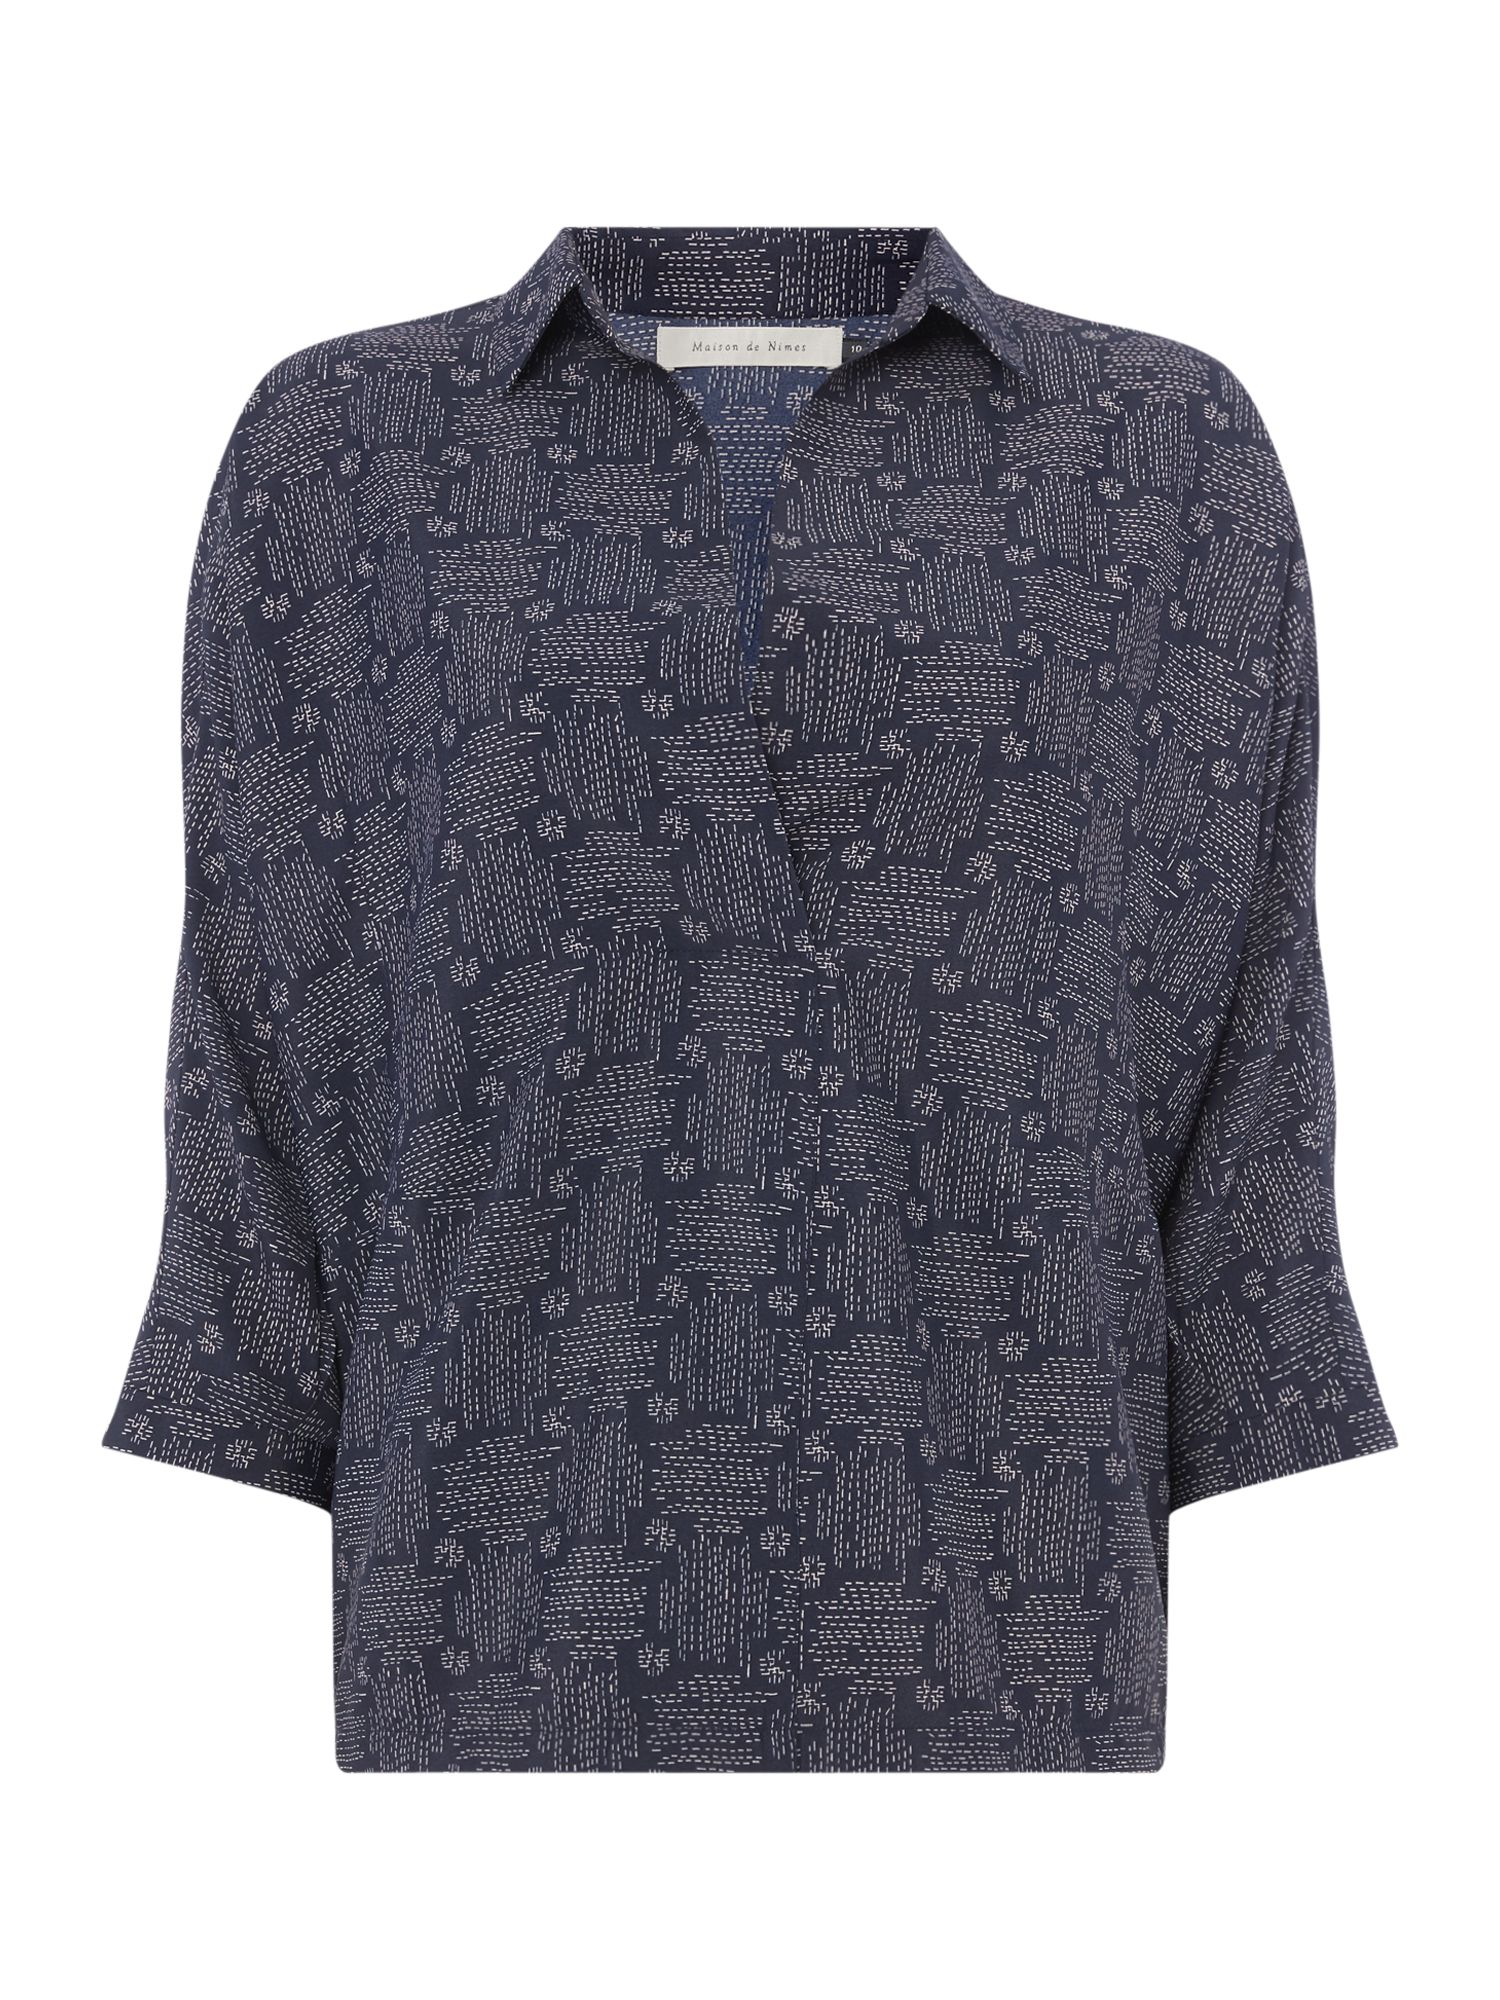 Maison De Nimes Cross hatch print pleat shirt, Stone